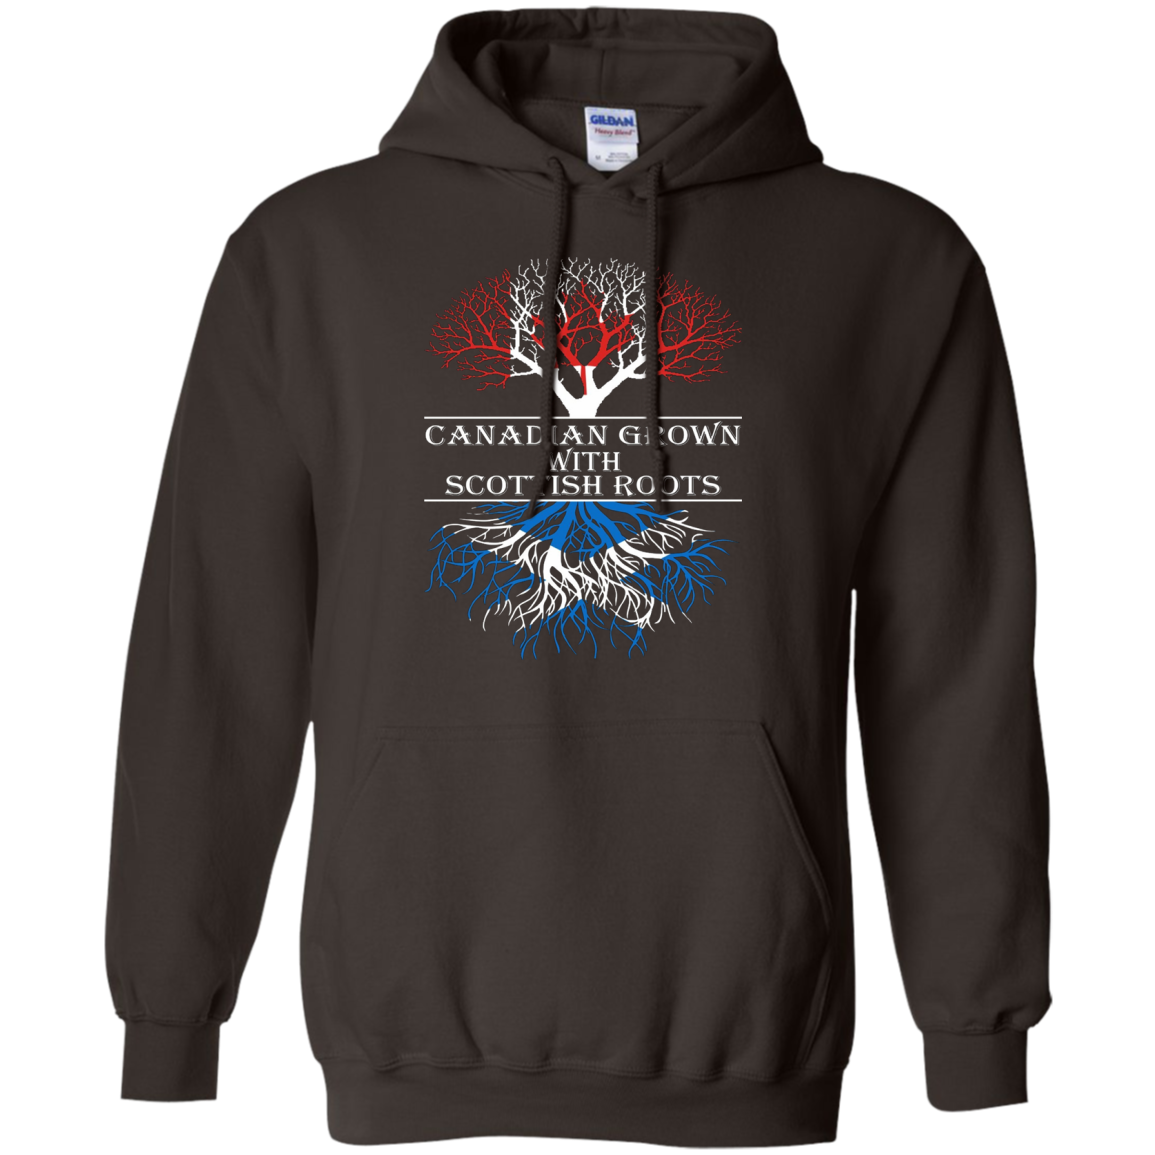 Canadian Grown With Scottish Roots T-Shirt Tshirt